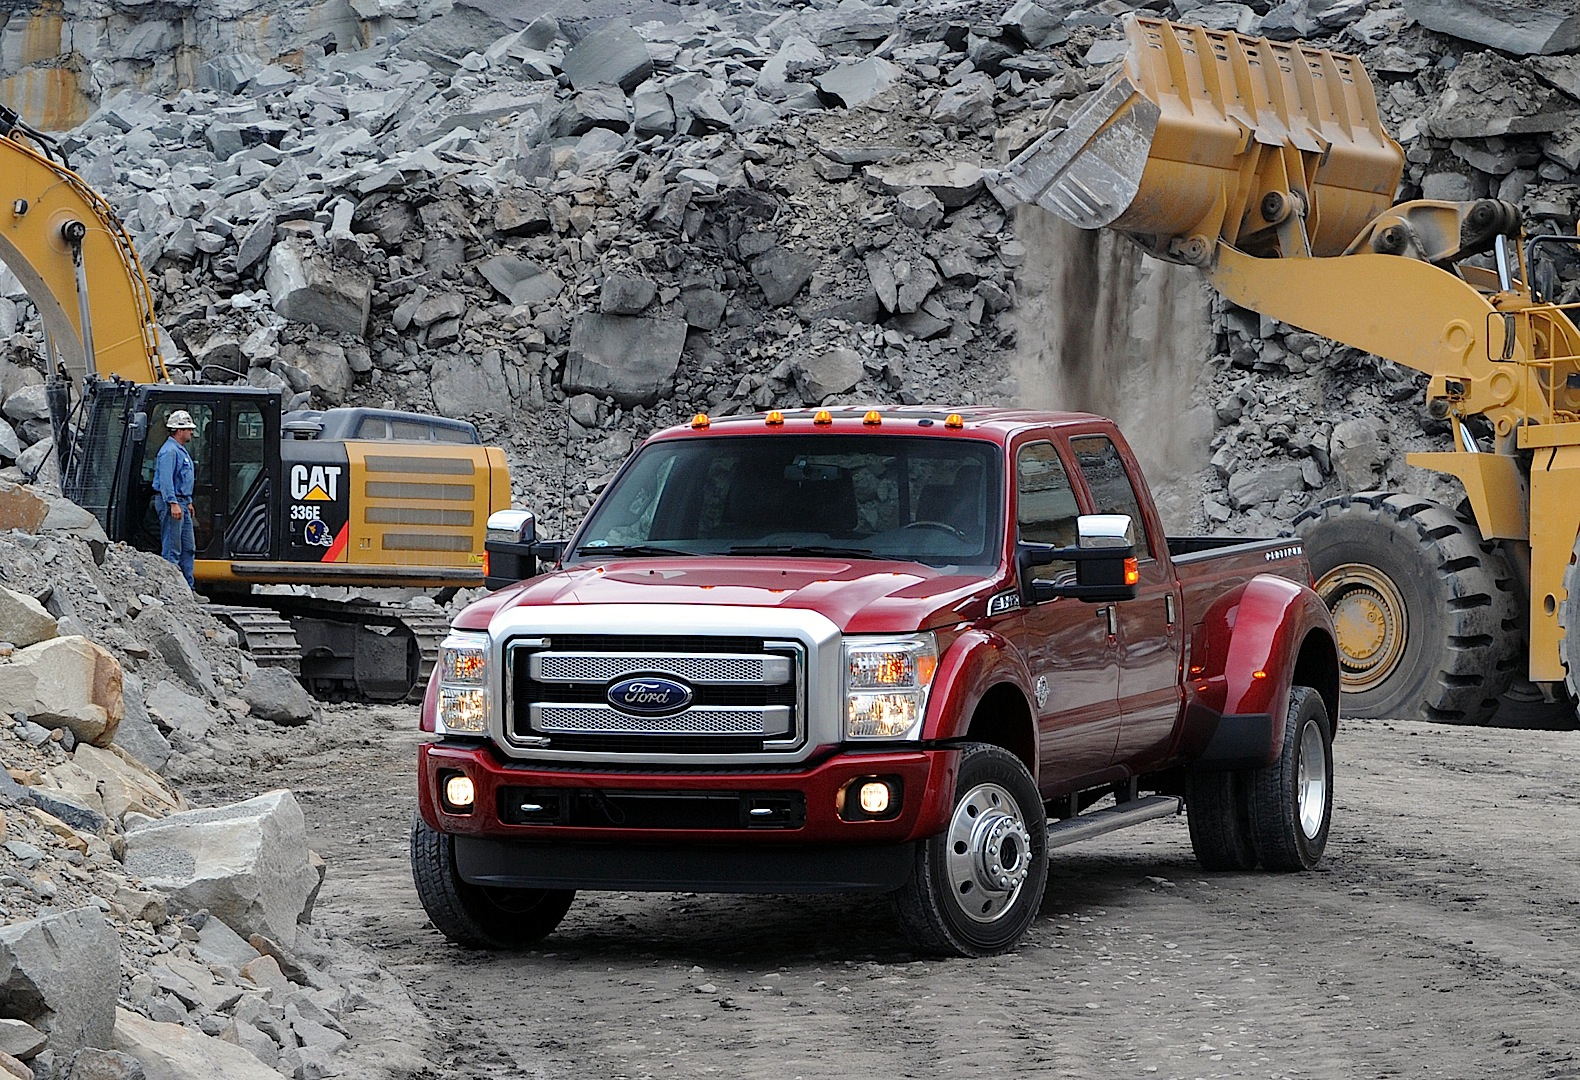 2015 Ford F-450 Can Tow 31,200 Pounds According to the SAE ...